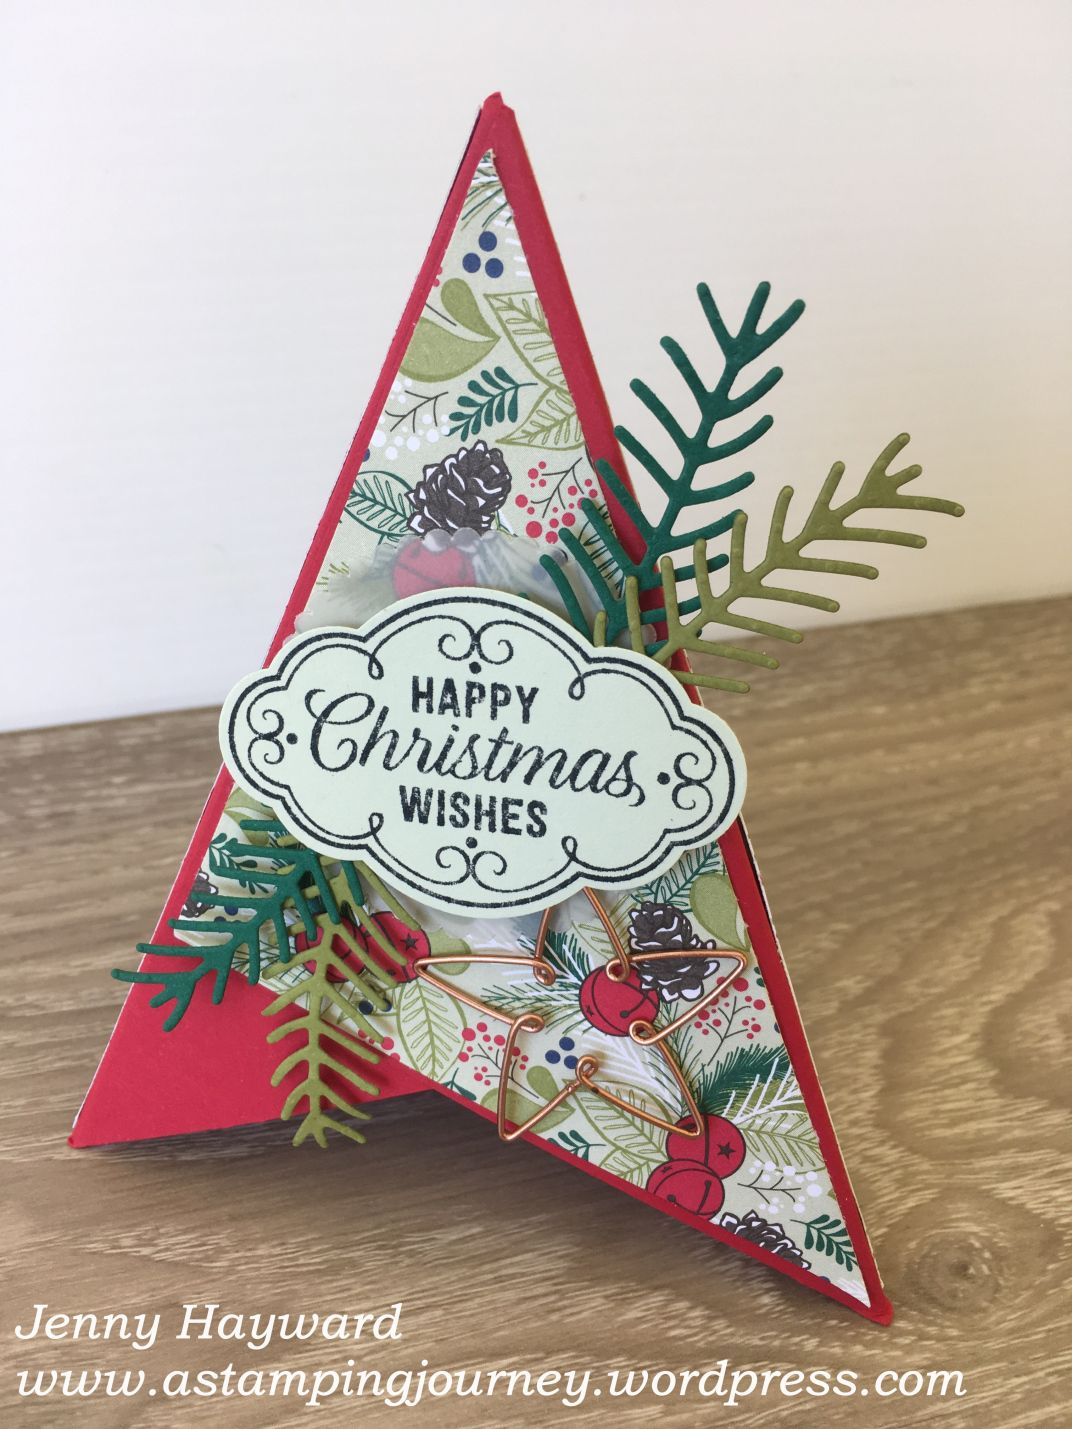 Wednesday S Wow 50 Creating A Pyramid Card And Maybe A Giveaway Christmas Cards To Make Christmas Cards Homemade Christmas Cards